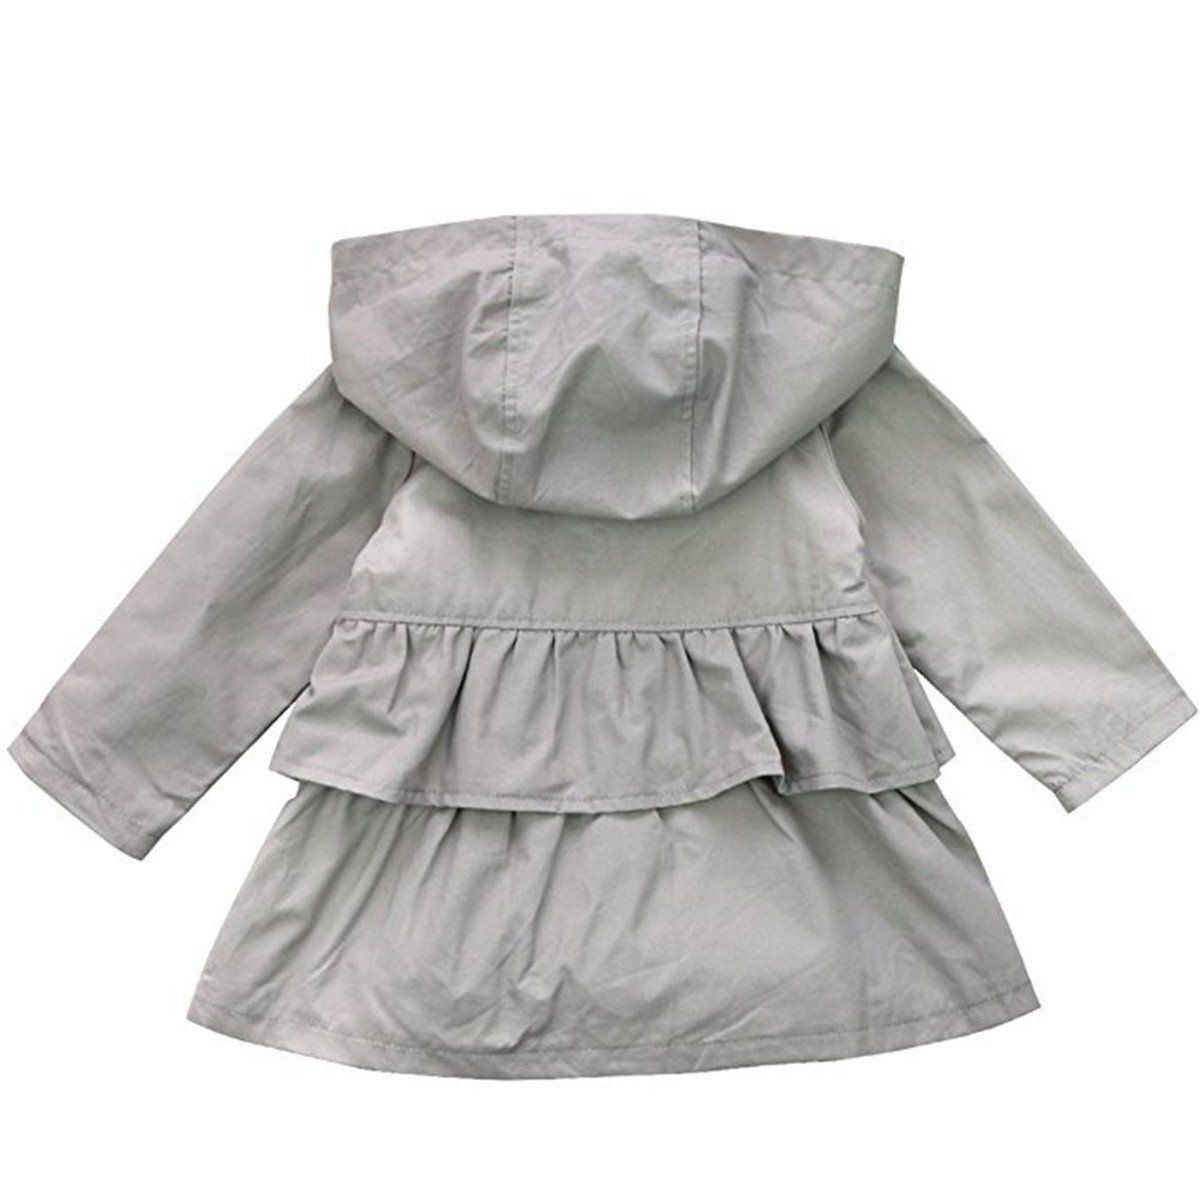 REWANGOING Baby Kid Little Girls Cute Spring Trench Wind Dust Coat Hooded Jacket Outerwear